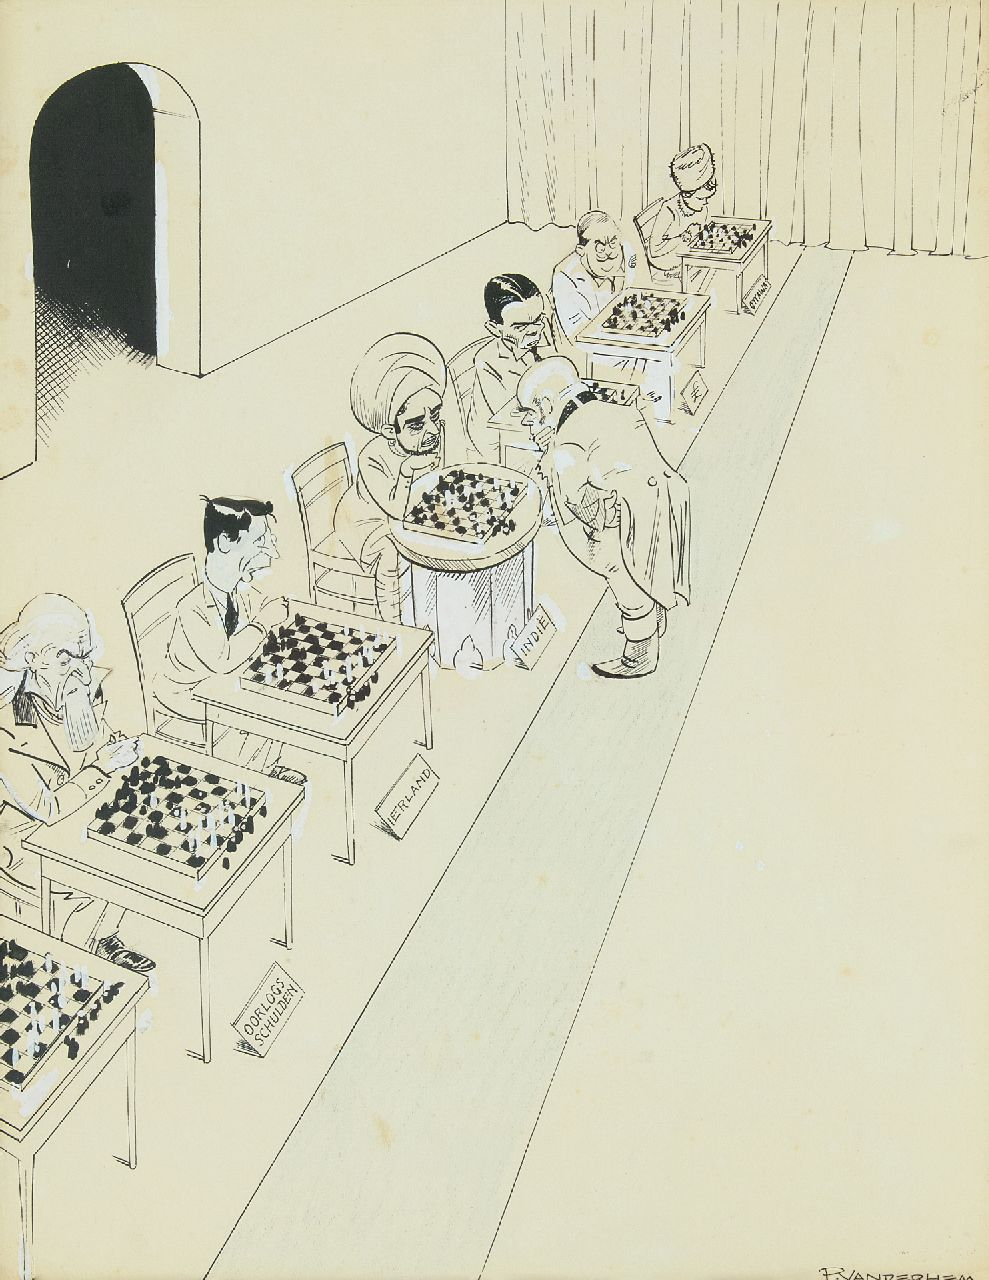 Hem P. van der | Pieter 'Piet' van der Hem | Watercolours and drawings offered for sale | John Bull playing simultaneous chess, pen and brush, ink and gouache on paper 45.0 x 35.5 cm, signed l.r.